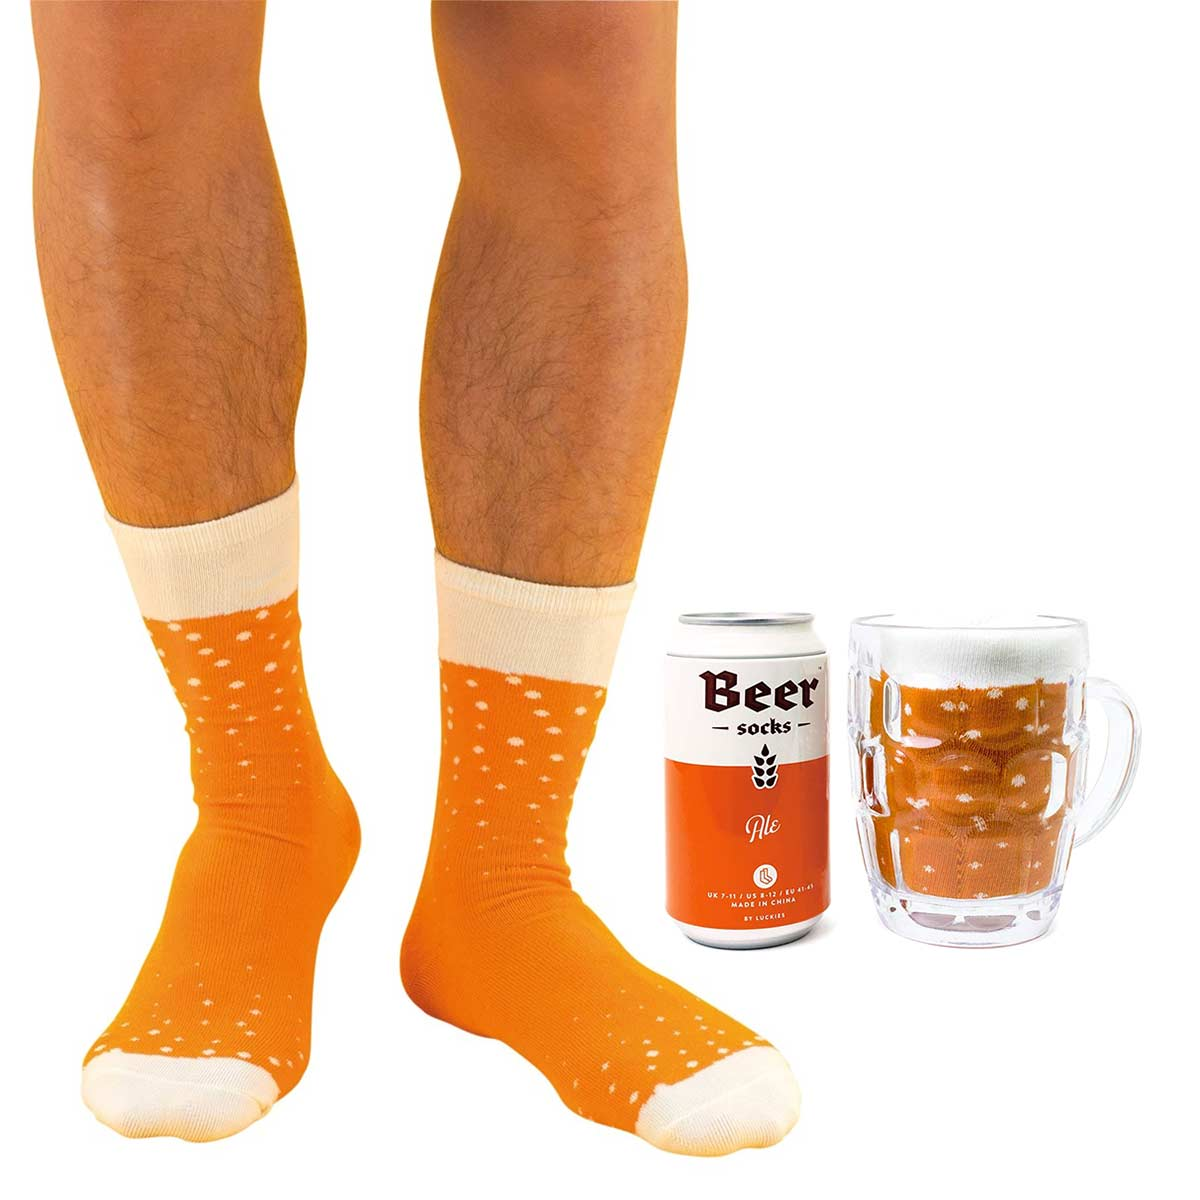 Luckies Men's Beer Socks 'Ale' | The Design Gift Shop